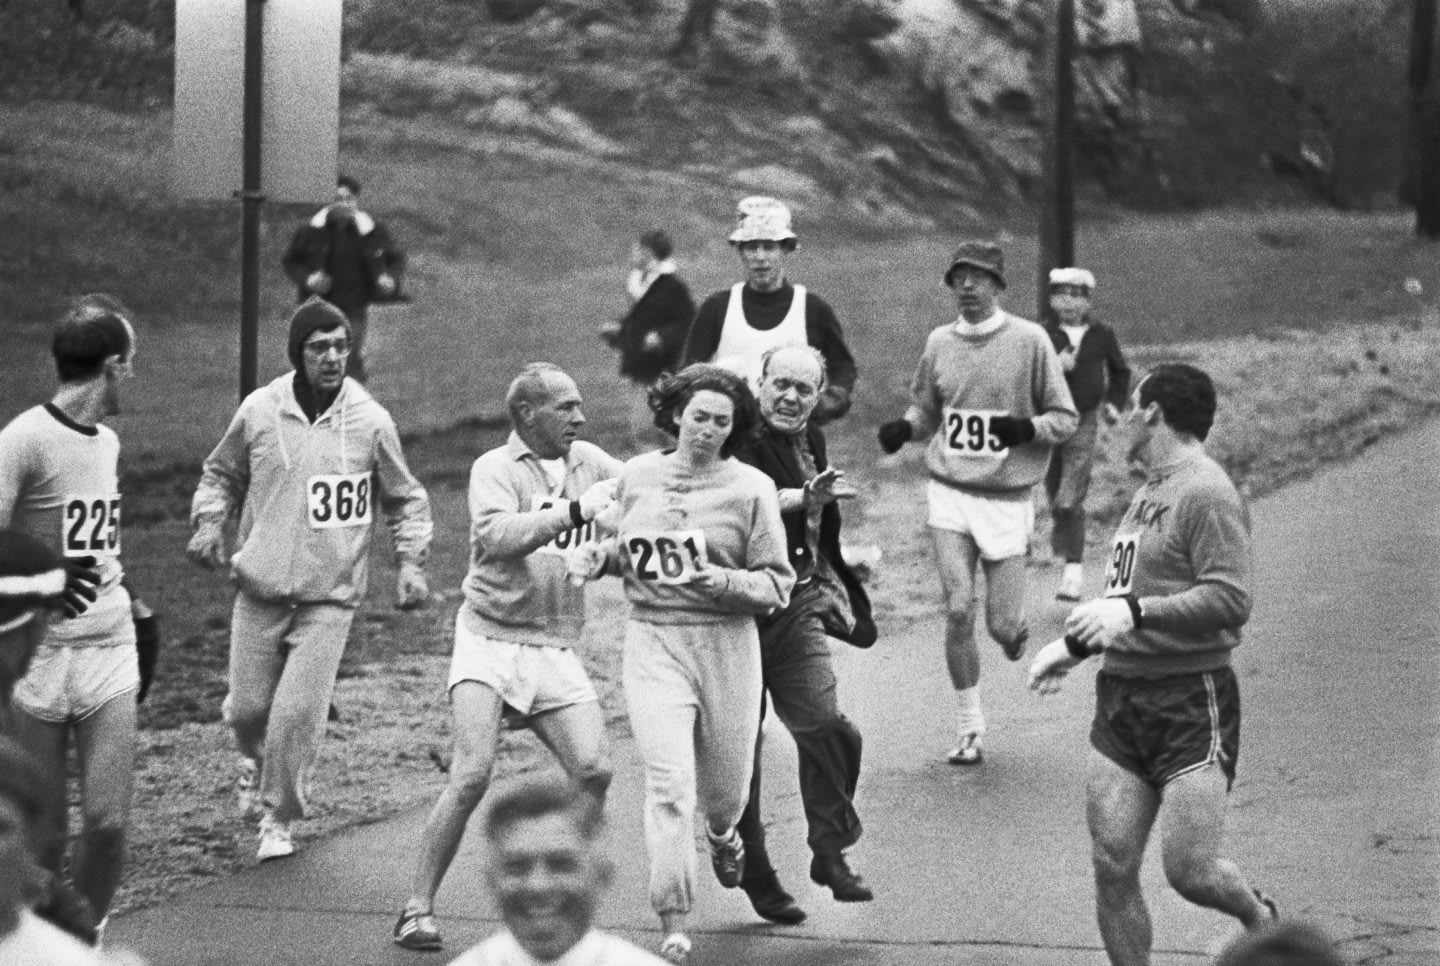 The first women to run the Boston Marathon - Kathrine Switzer | adidas history